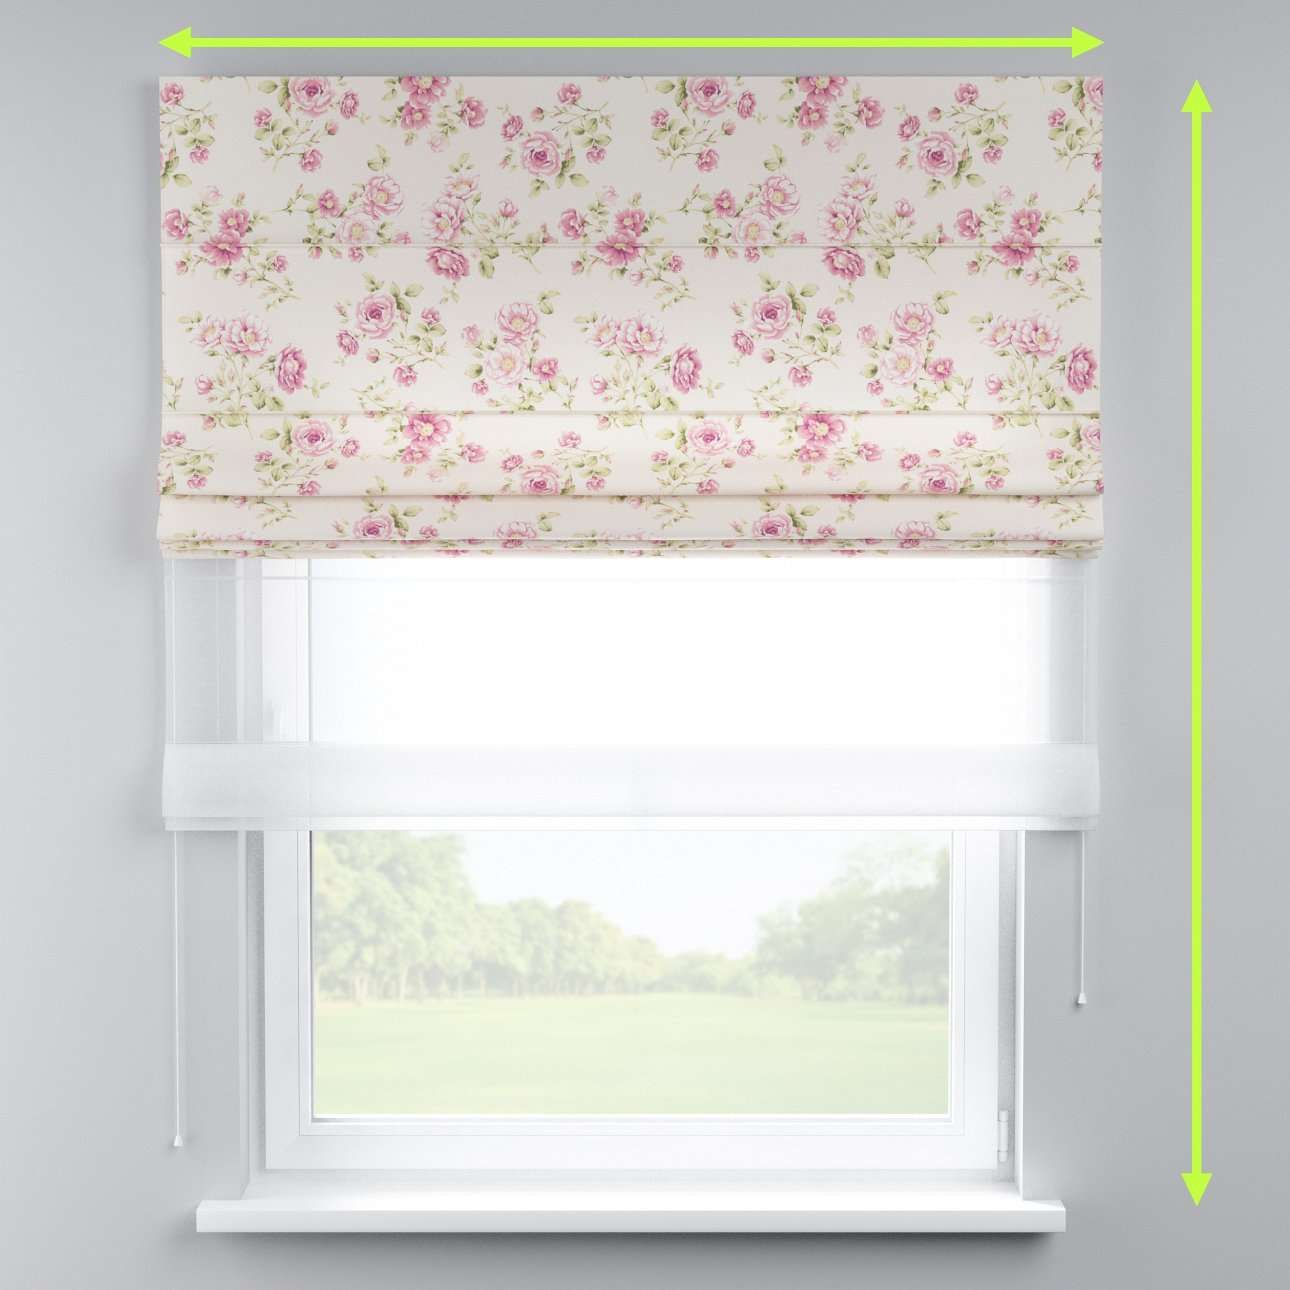 Voile and fabric roman blind (DUO II) in collection Ashley, fabric: 137-43